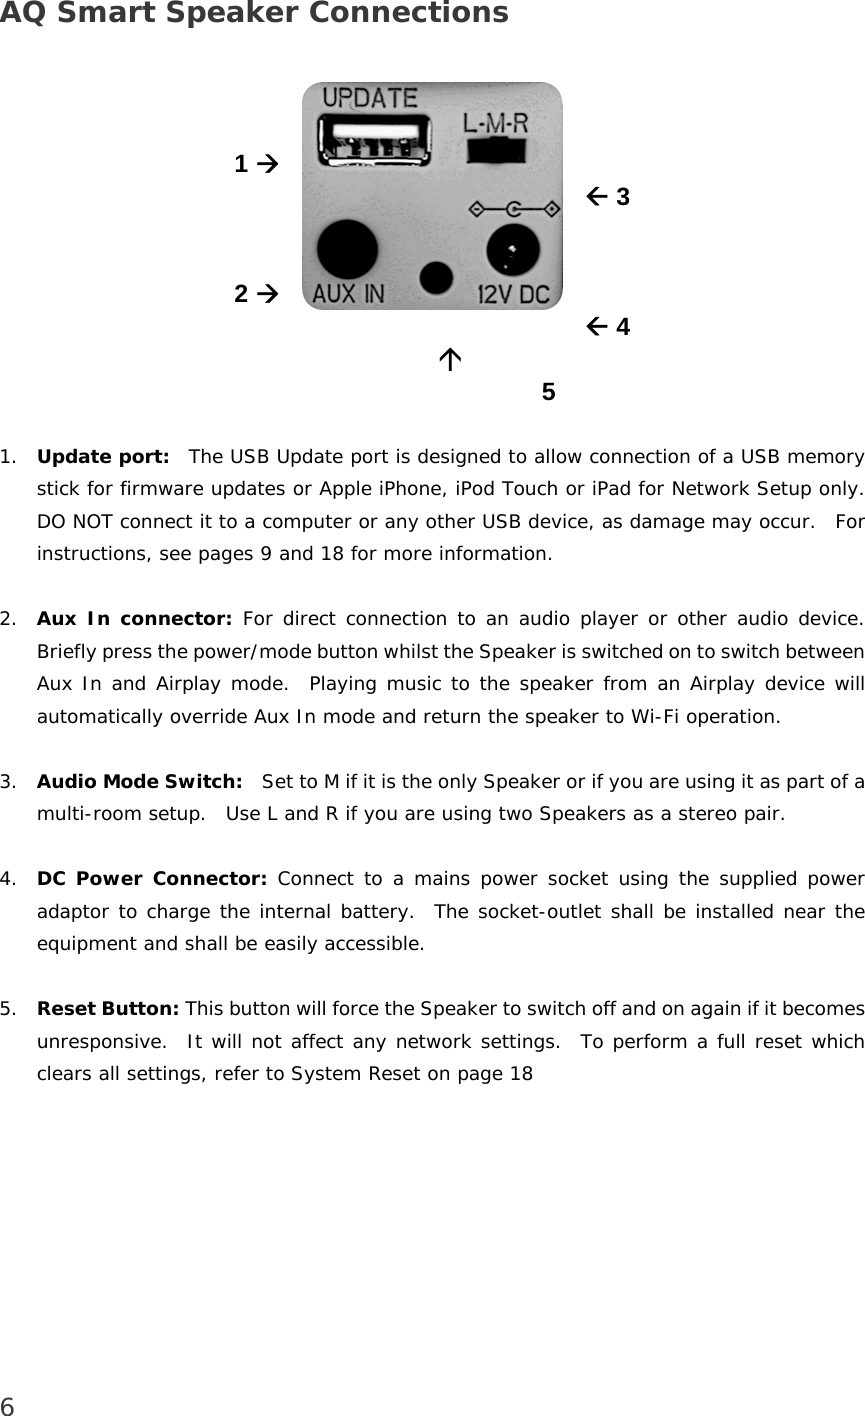 Victory Concept Aps Jess001 Aq Smart Speaker With Apple Airplay User Nano Ipod Usb Wiring Diagram 6 Connections 1 2 3 4 5